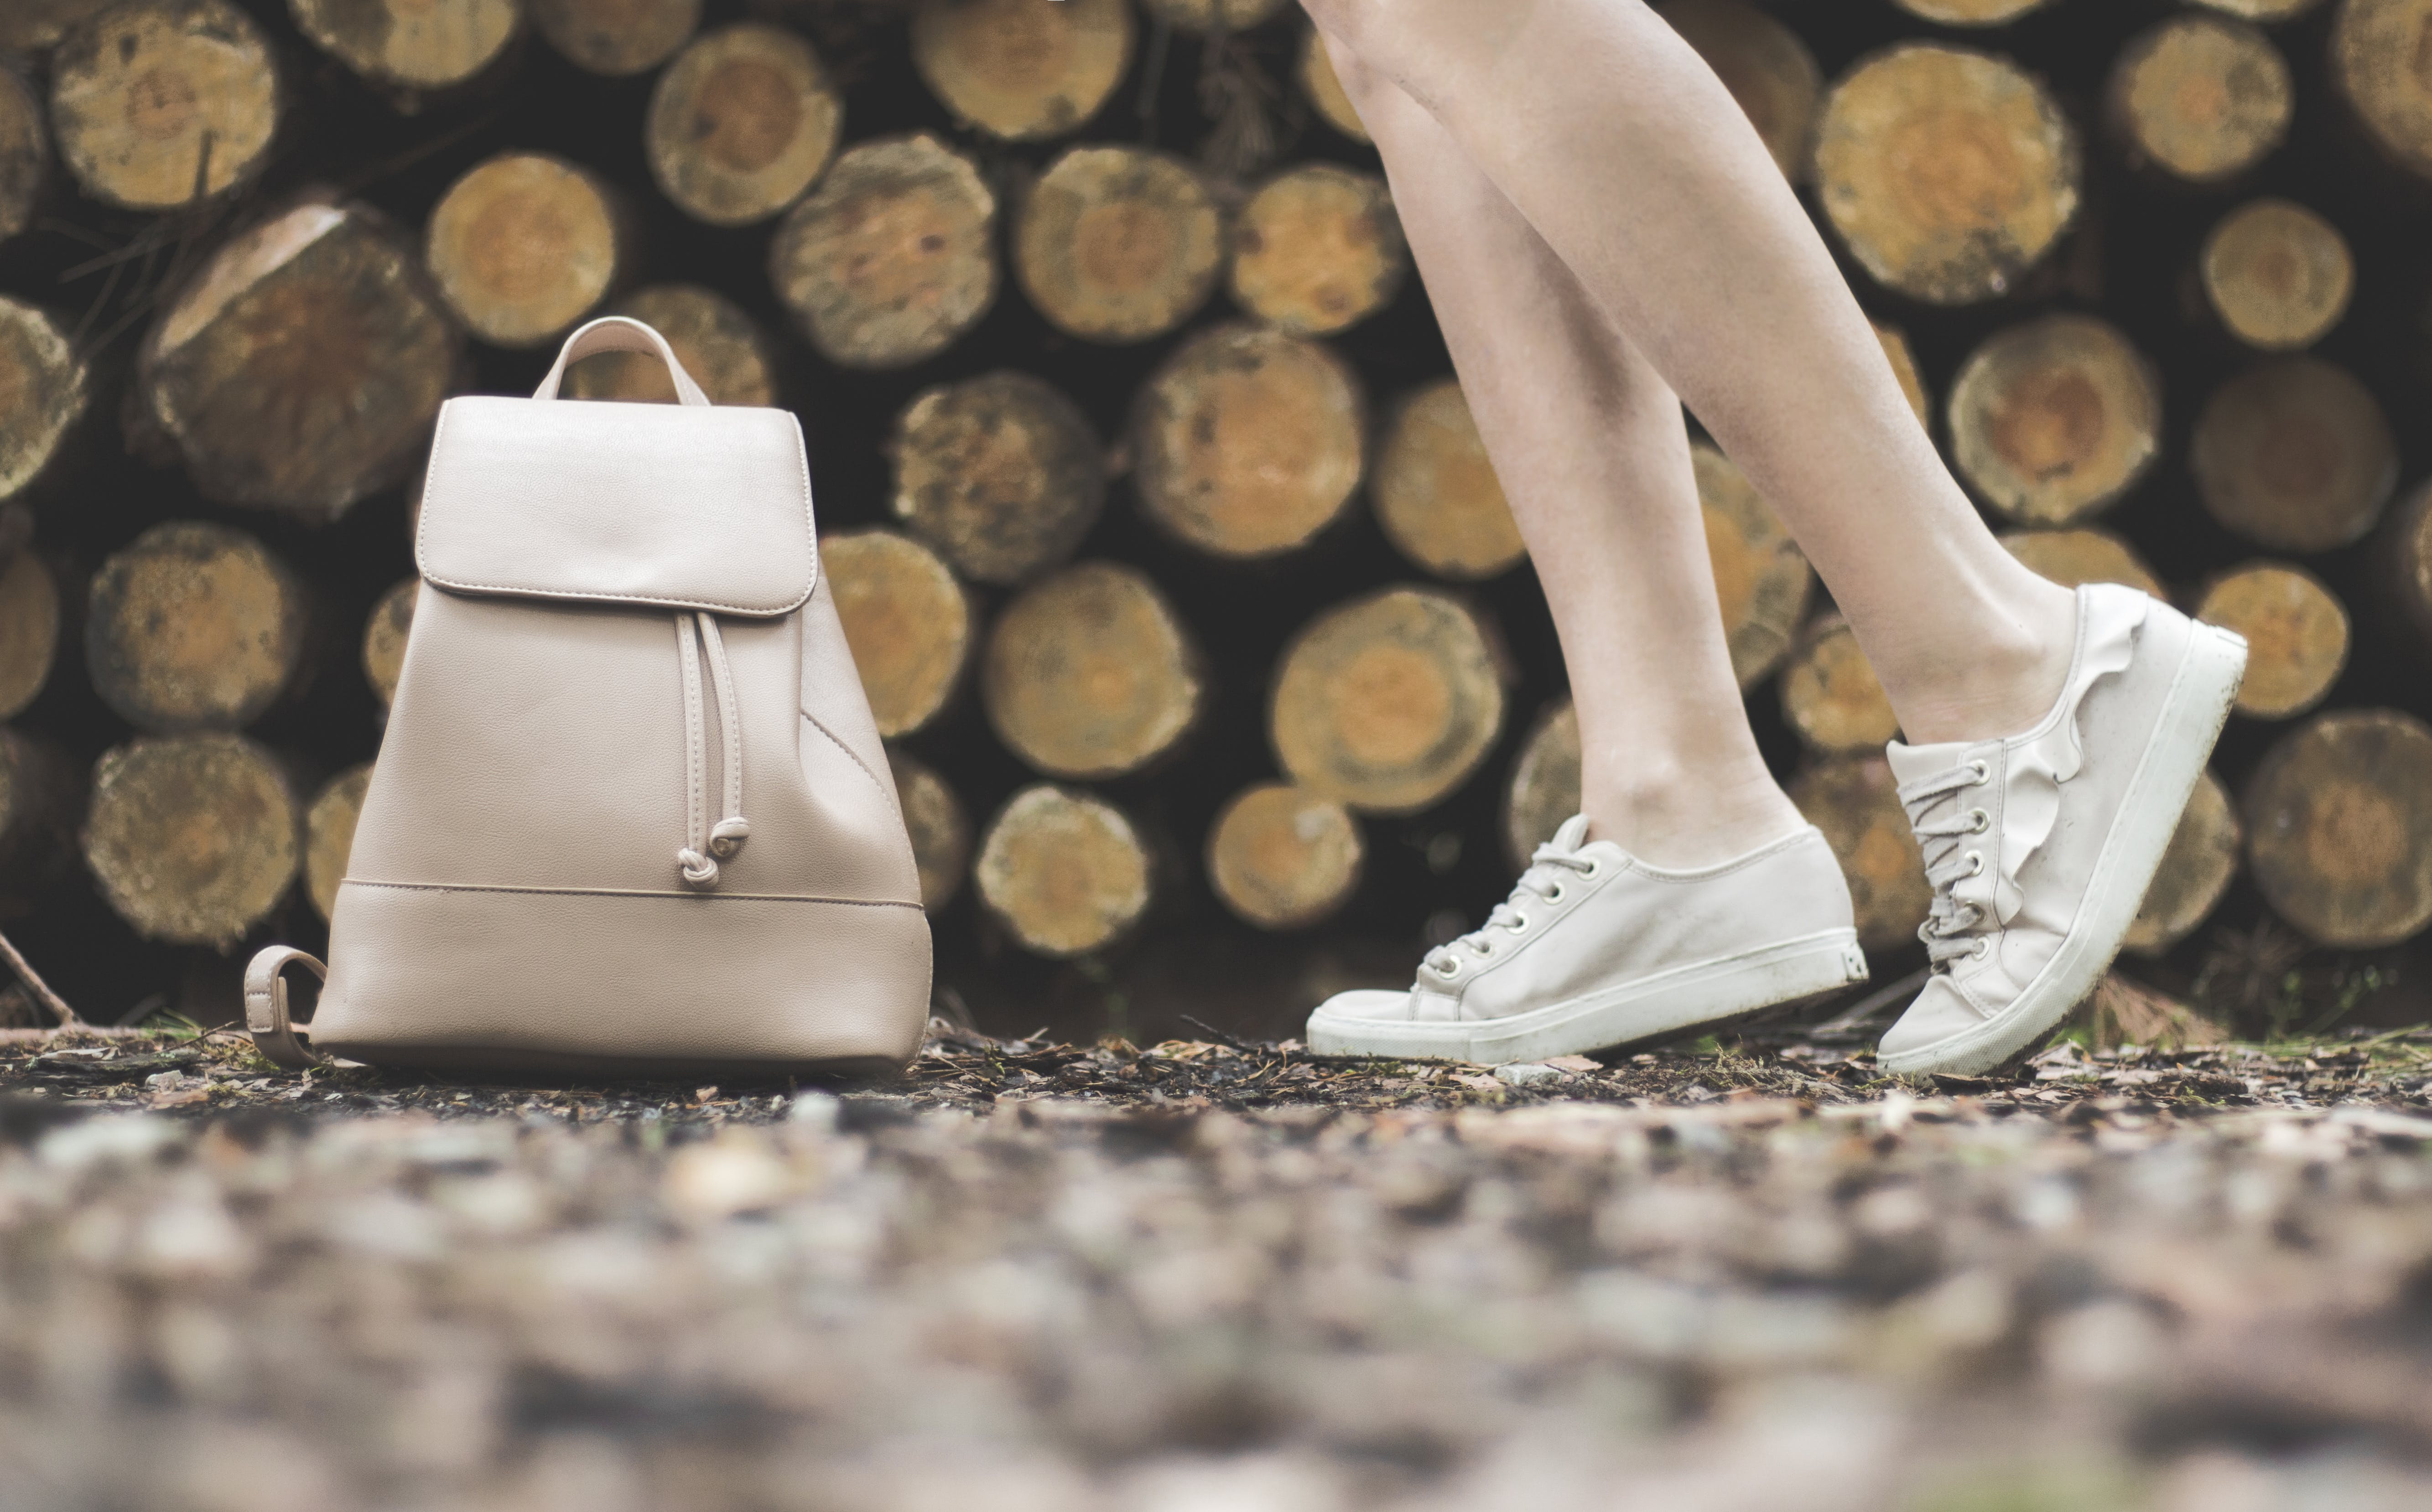 Woman Standing Near White Leather Backpack